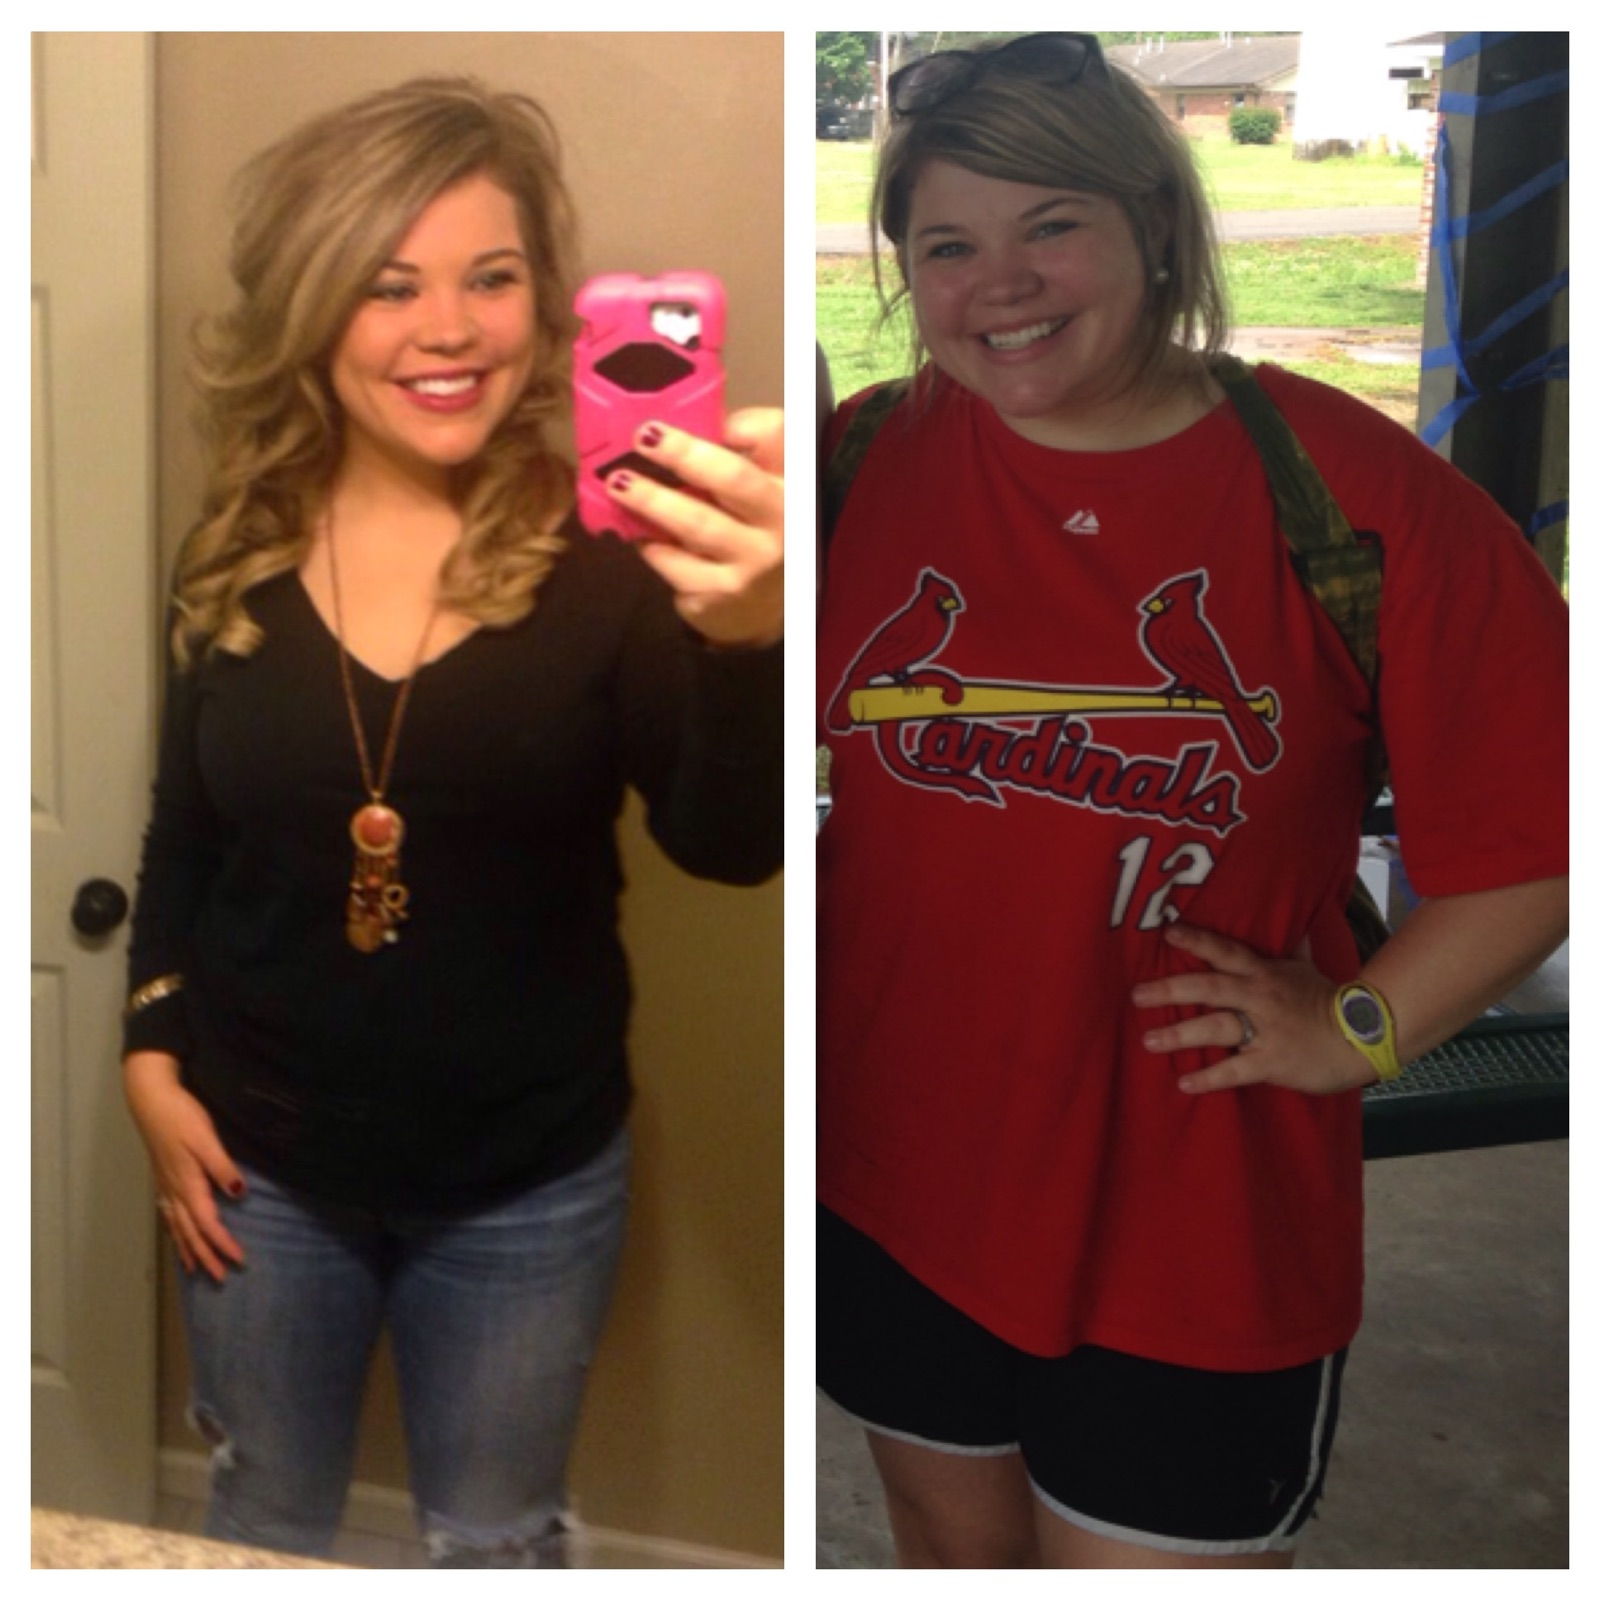 72 Pounds Lost:  I was tired of giving up